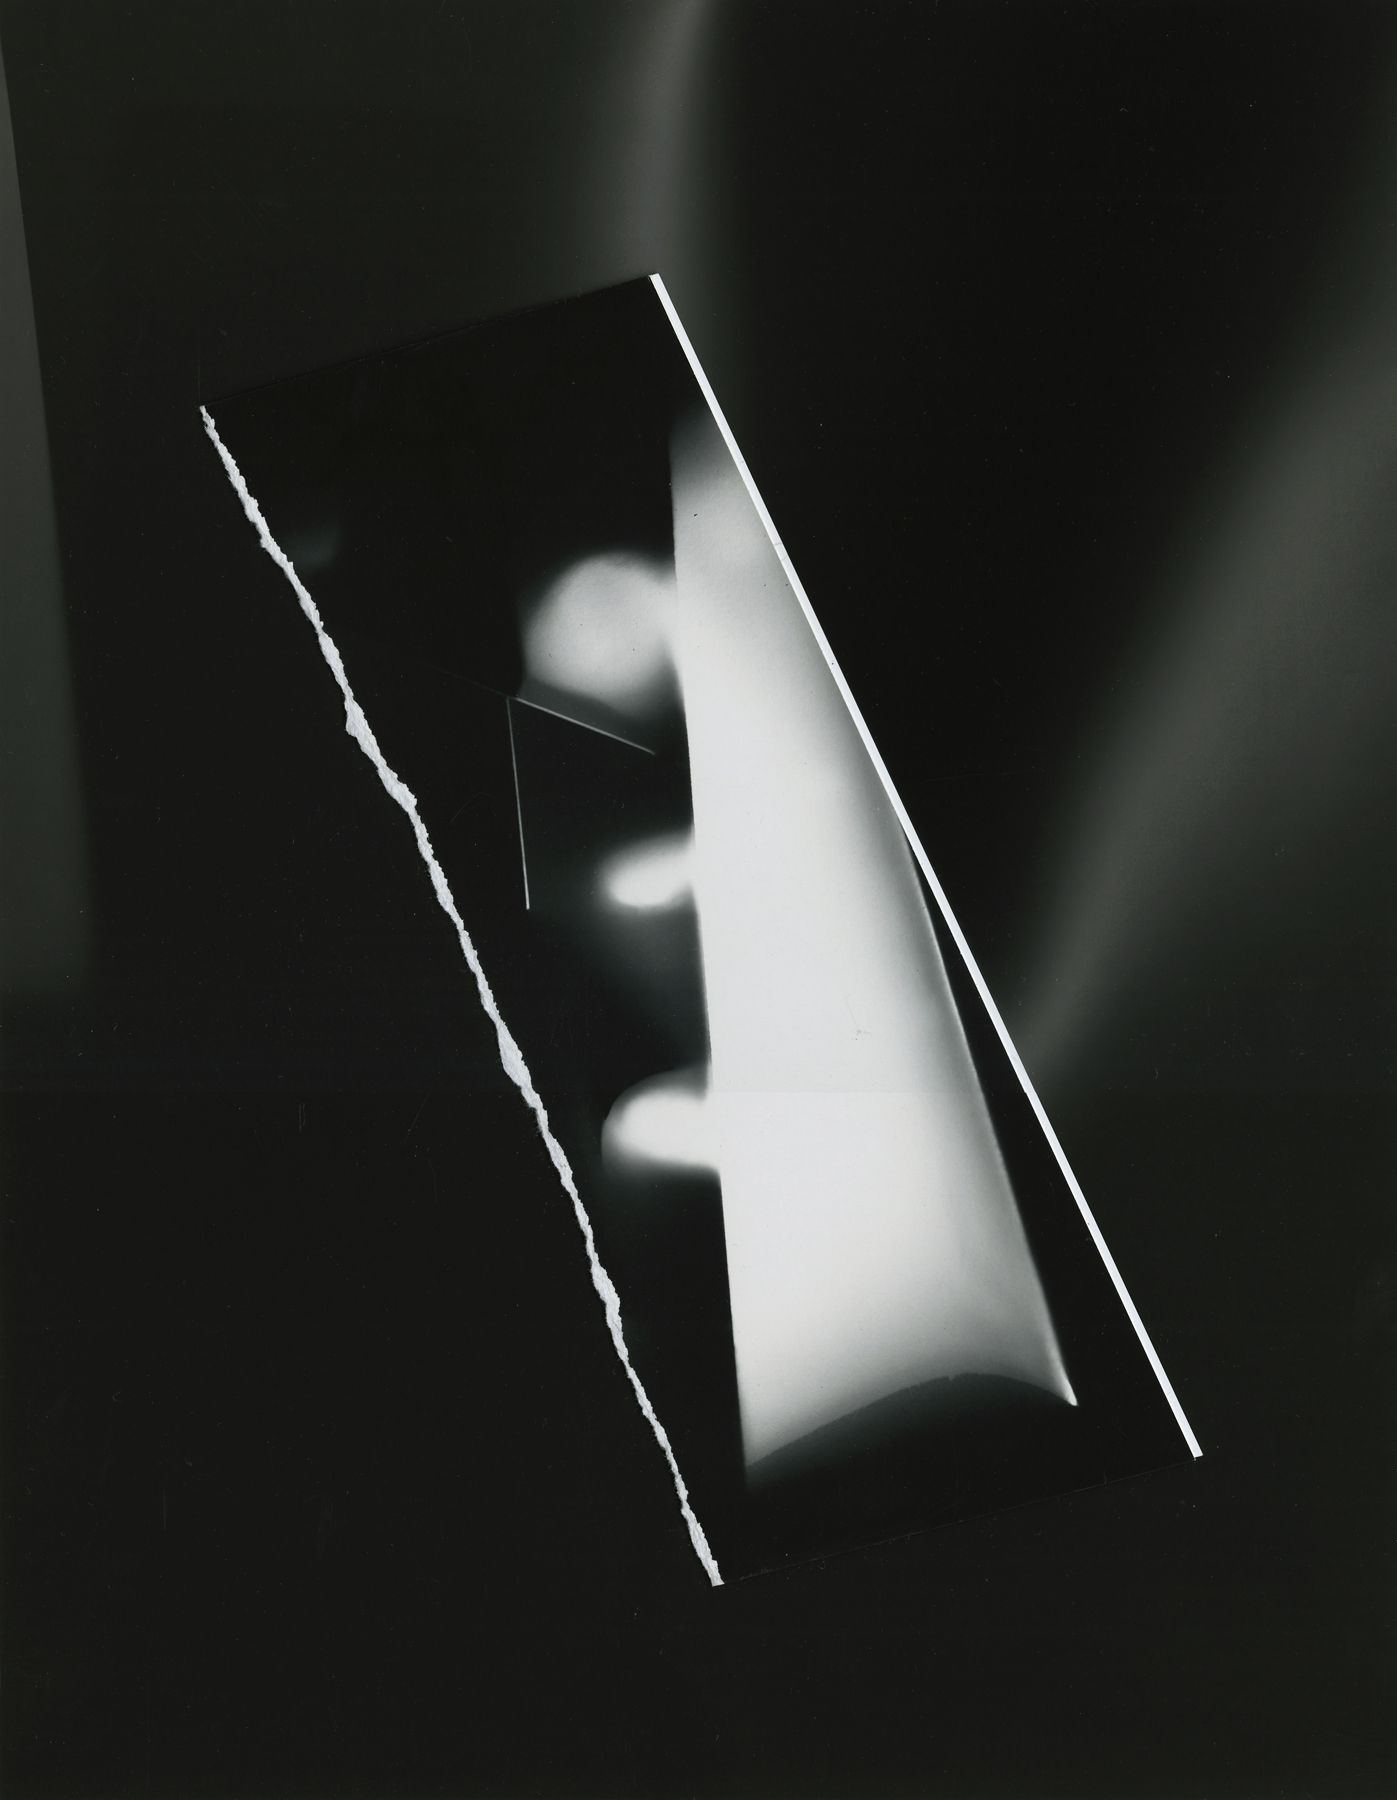 Ray K. Metzker - Arrestation 07 06, 2007 - Howard Greenberg Gallery - 2018